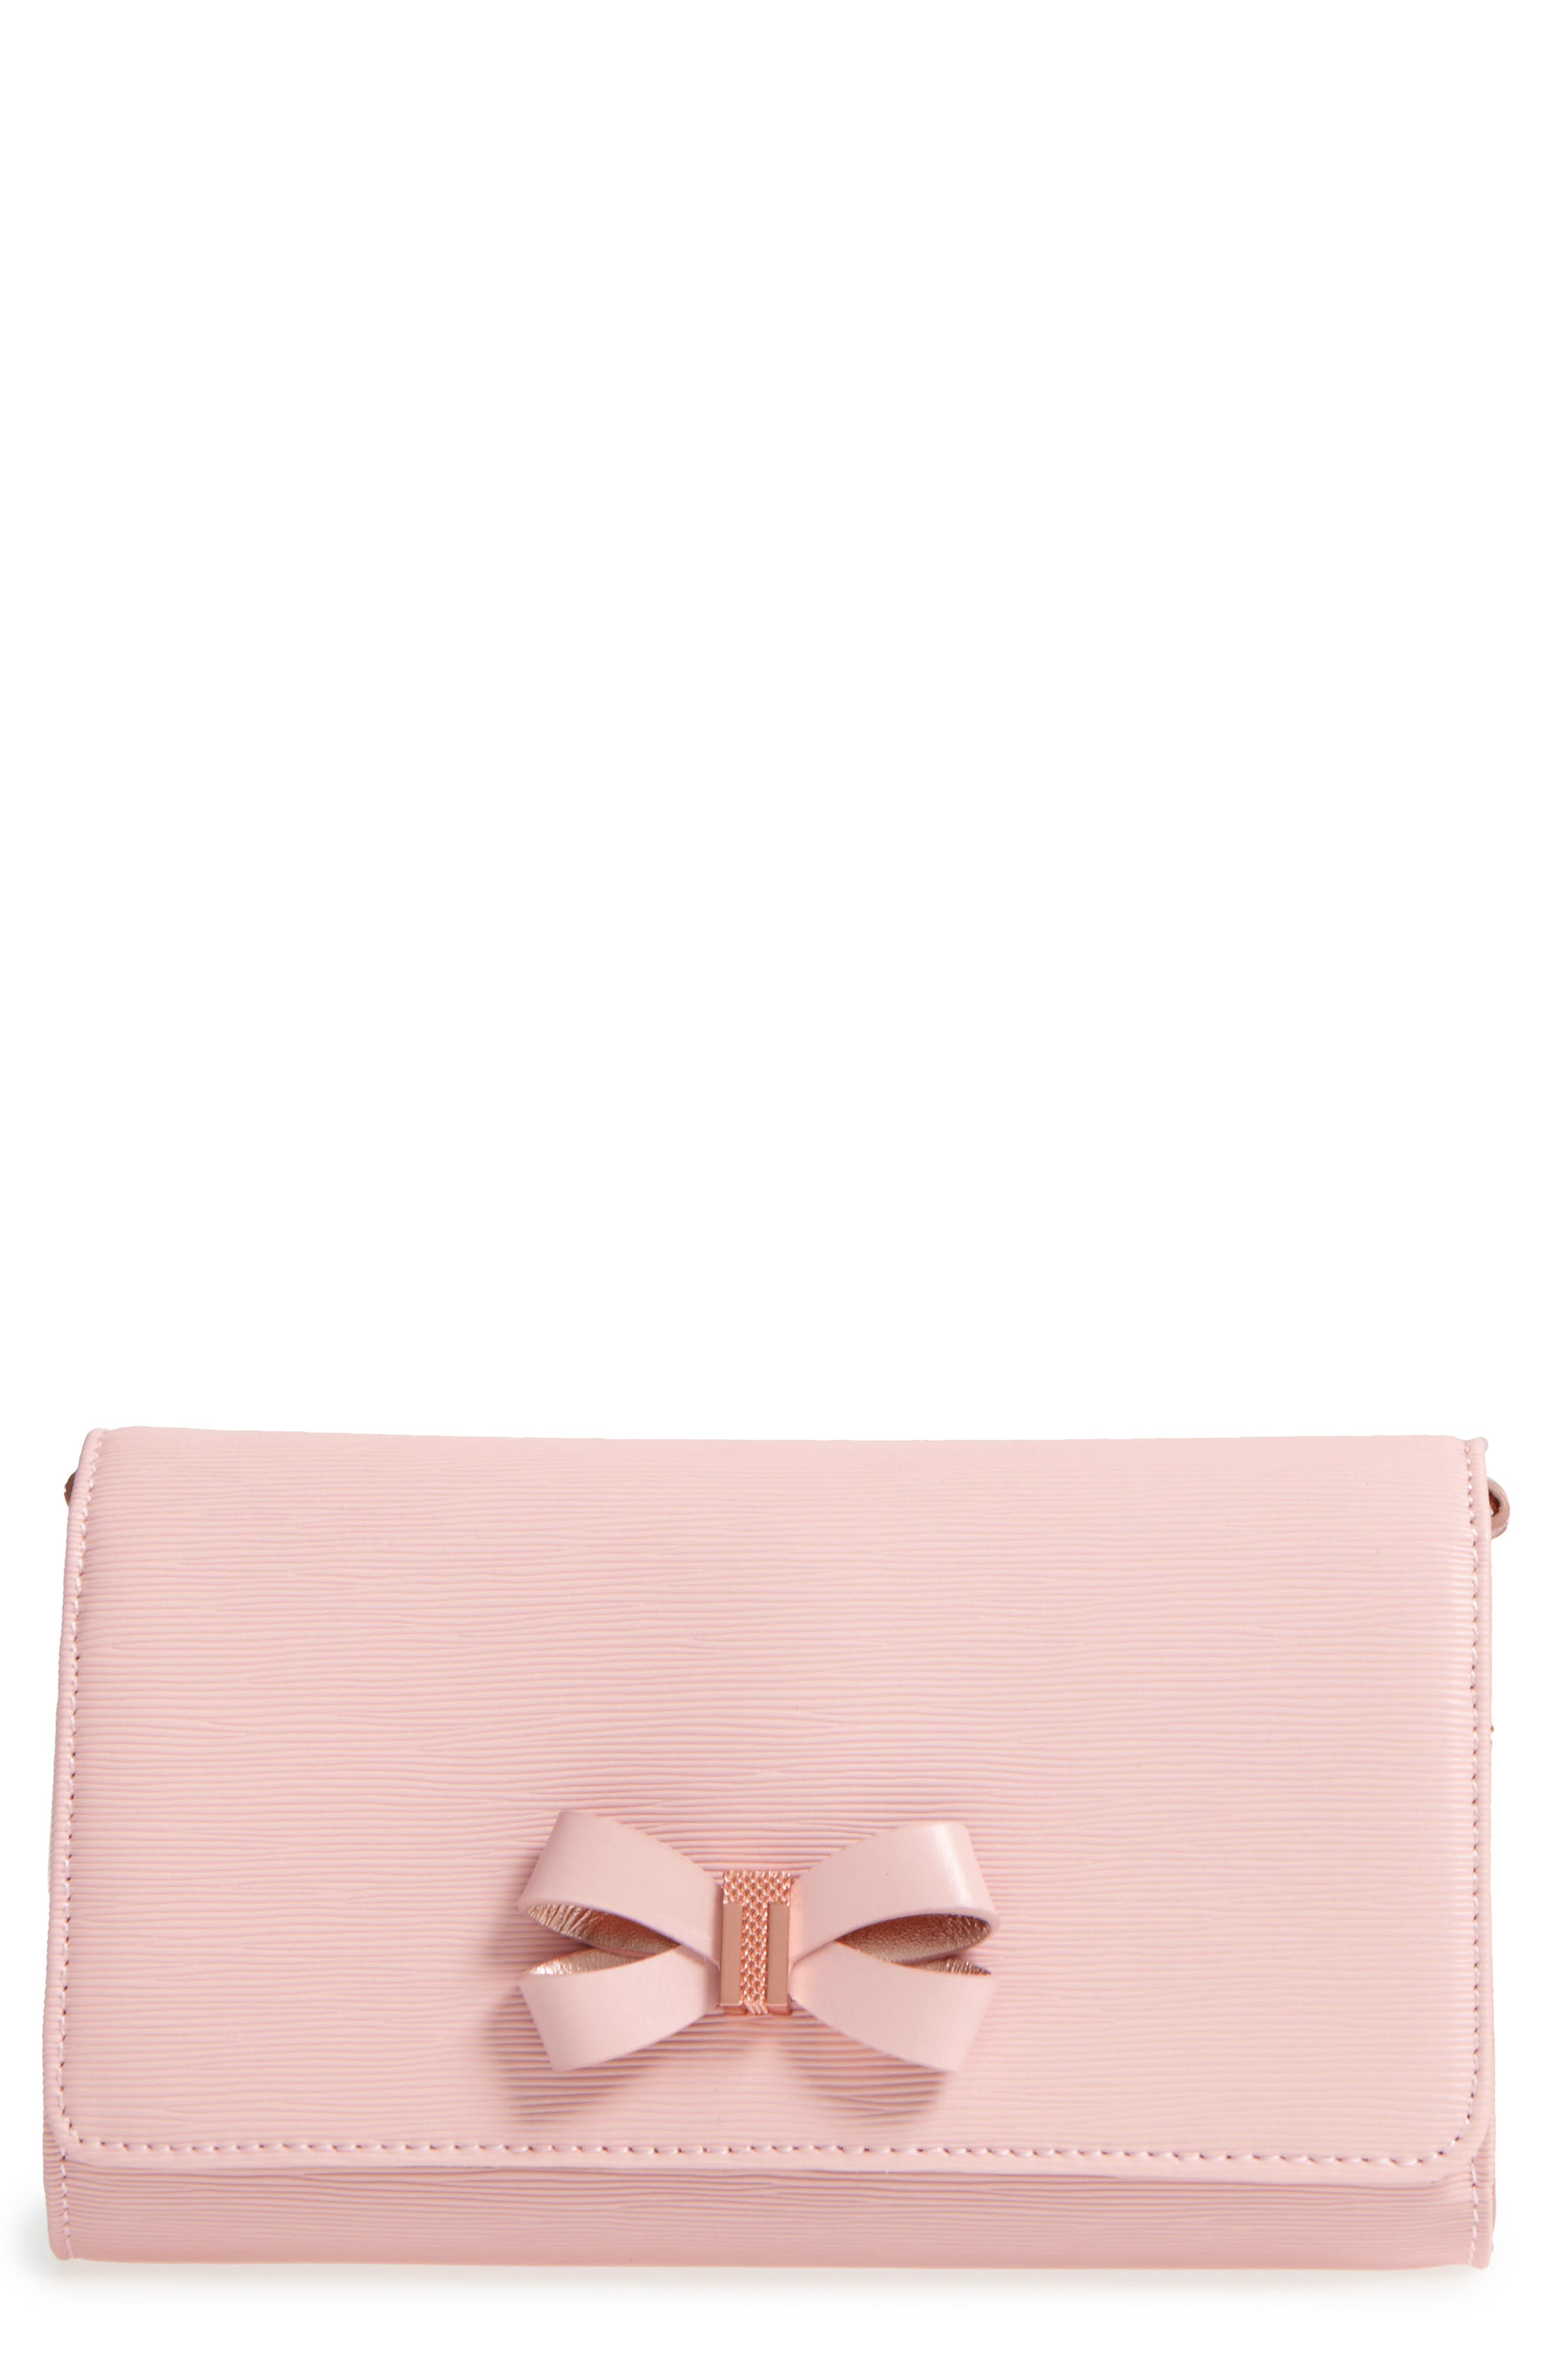 Melisia Bow Leather Mantinee Wallet on a Chain,                             Main thumbnail 1, color,                             Light Pink